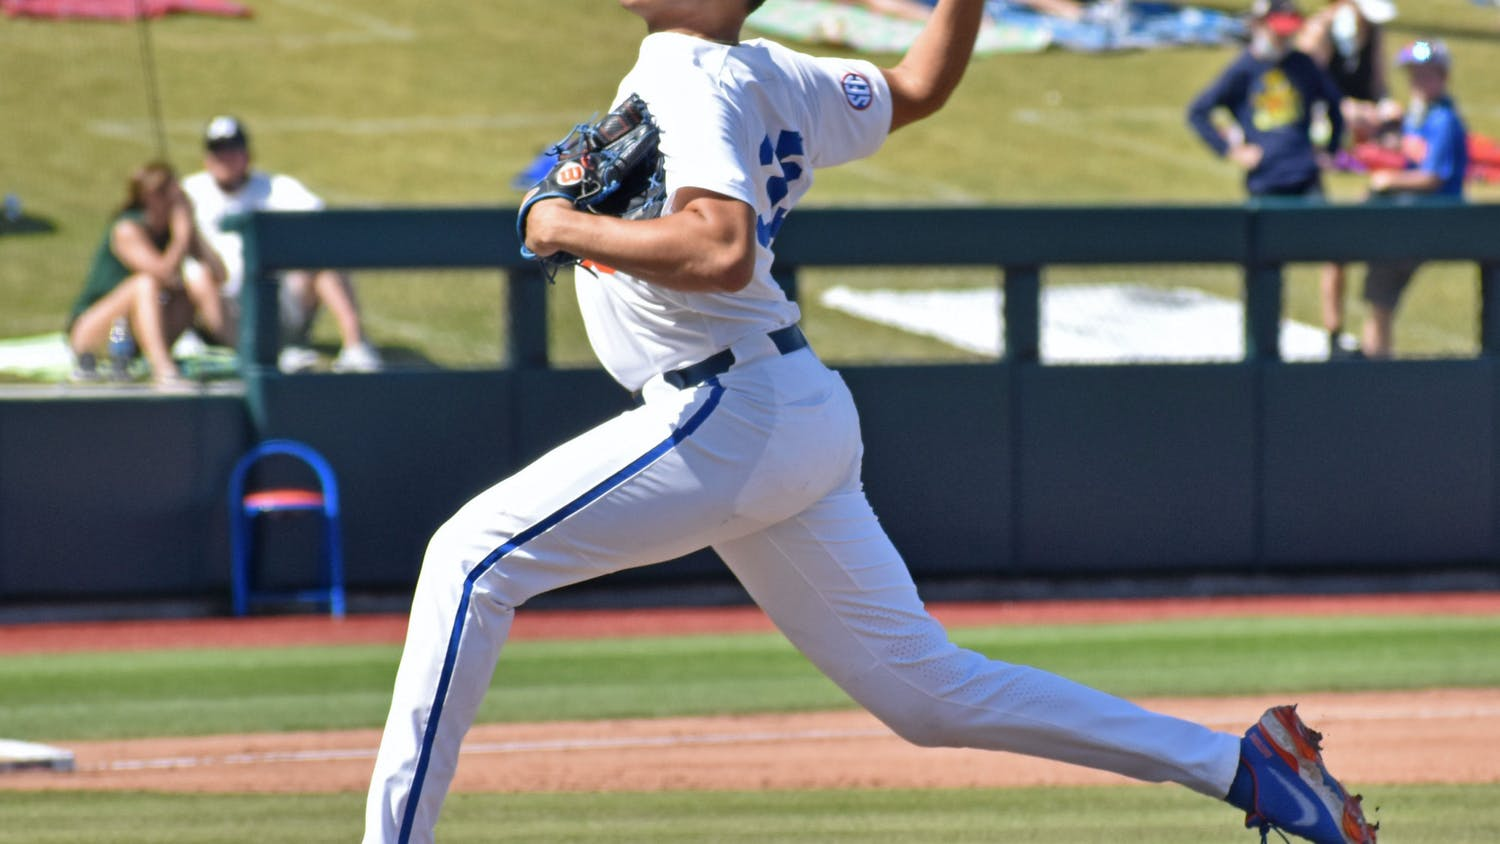 Junior Franco Aleman delivers a pitch against Jacksonville on March 14.